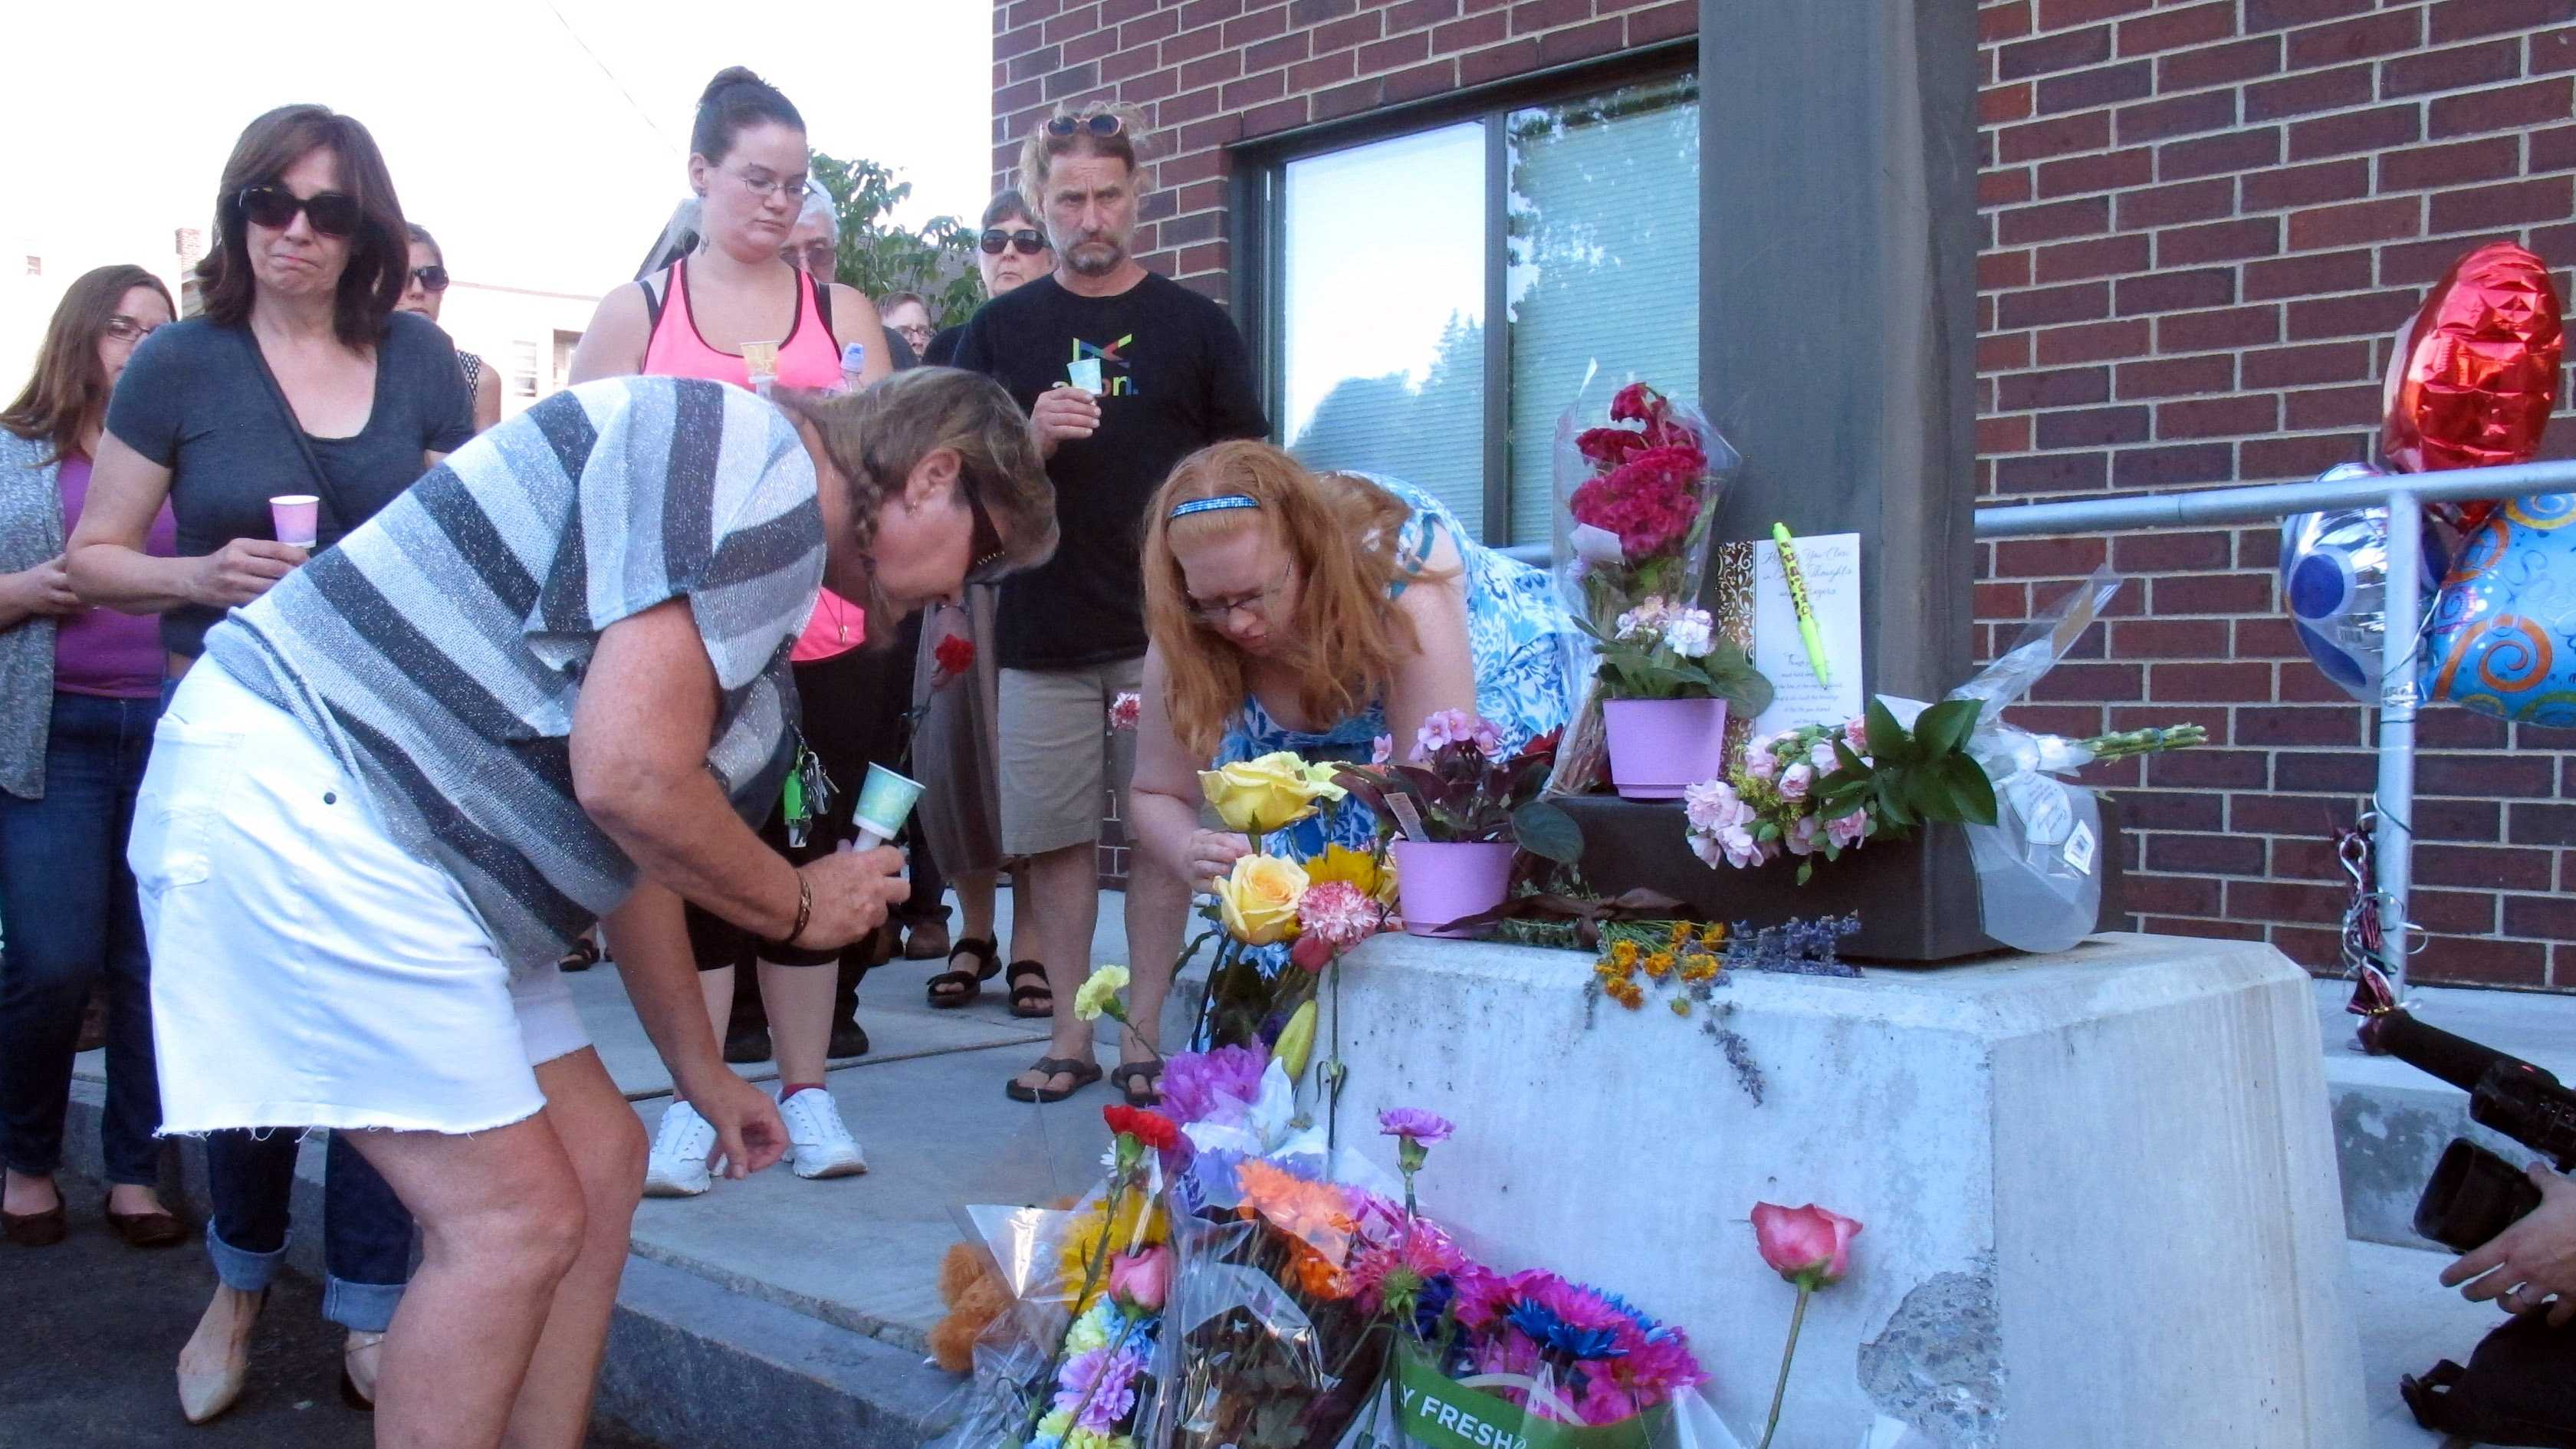 People place flowers, Sunday, Aug. 9, 2015, at the site where Vermont social worker Lara Sobel was killed on Friday in Barre, Vt. About 300 people attended a vigil that began at a labor hall and ended at the site where Sobel was shot Friday as she left work. Jody Herring, the woman charged with Sobel's death, is due in court Monday.